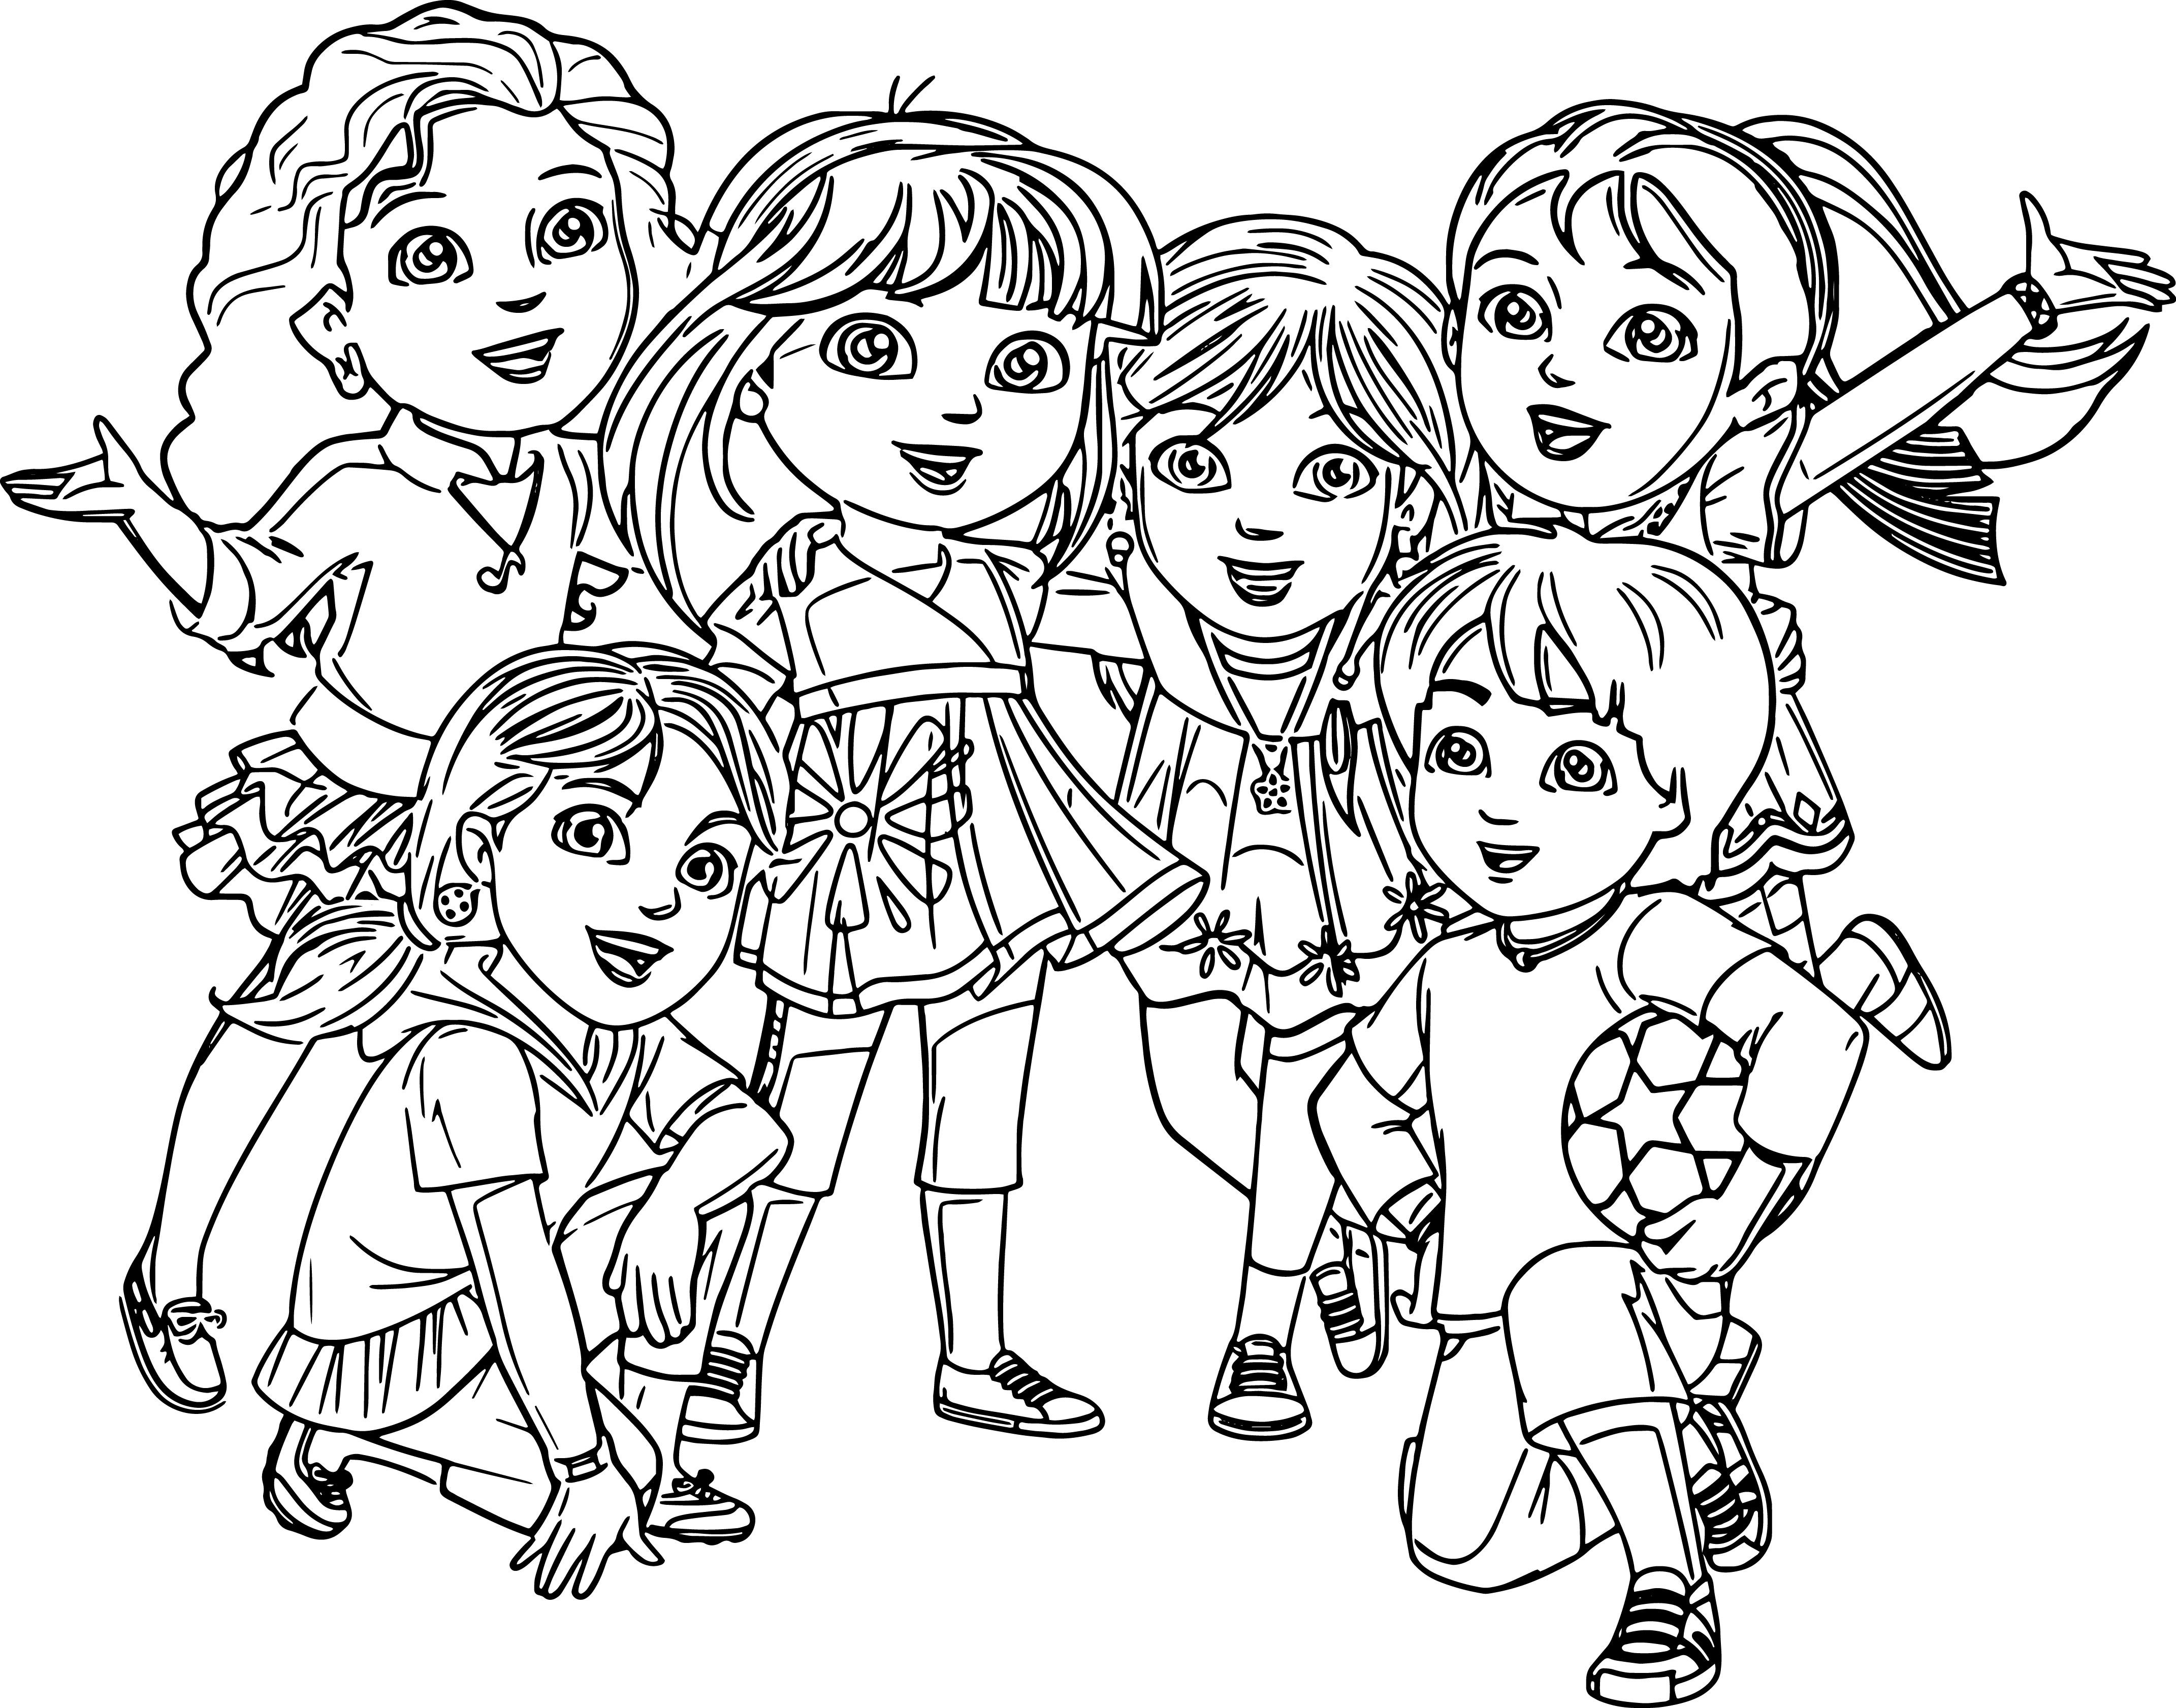 Pg 19 and 19 – Dora and Friends coloring page